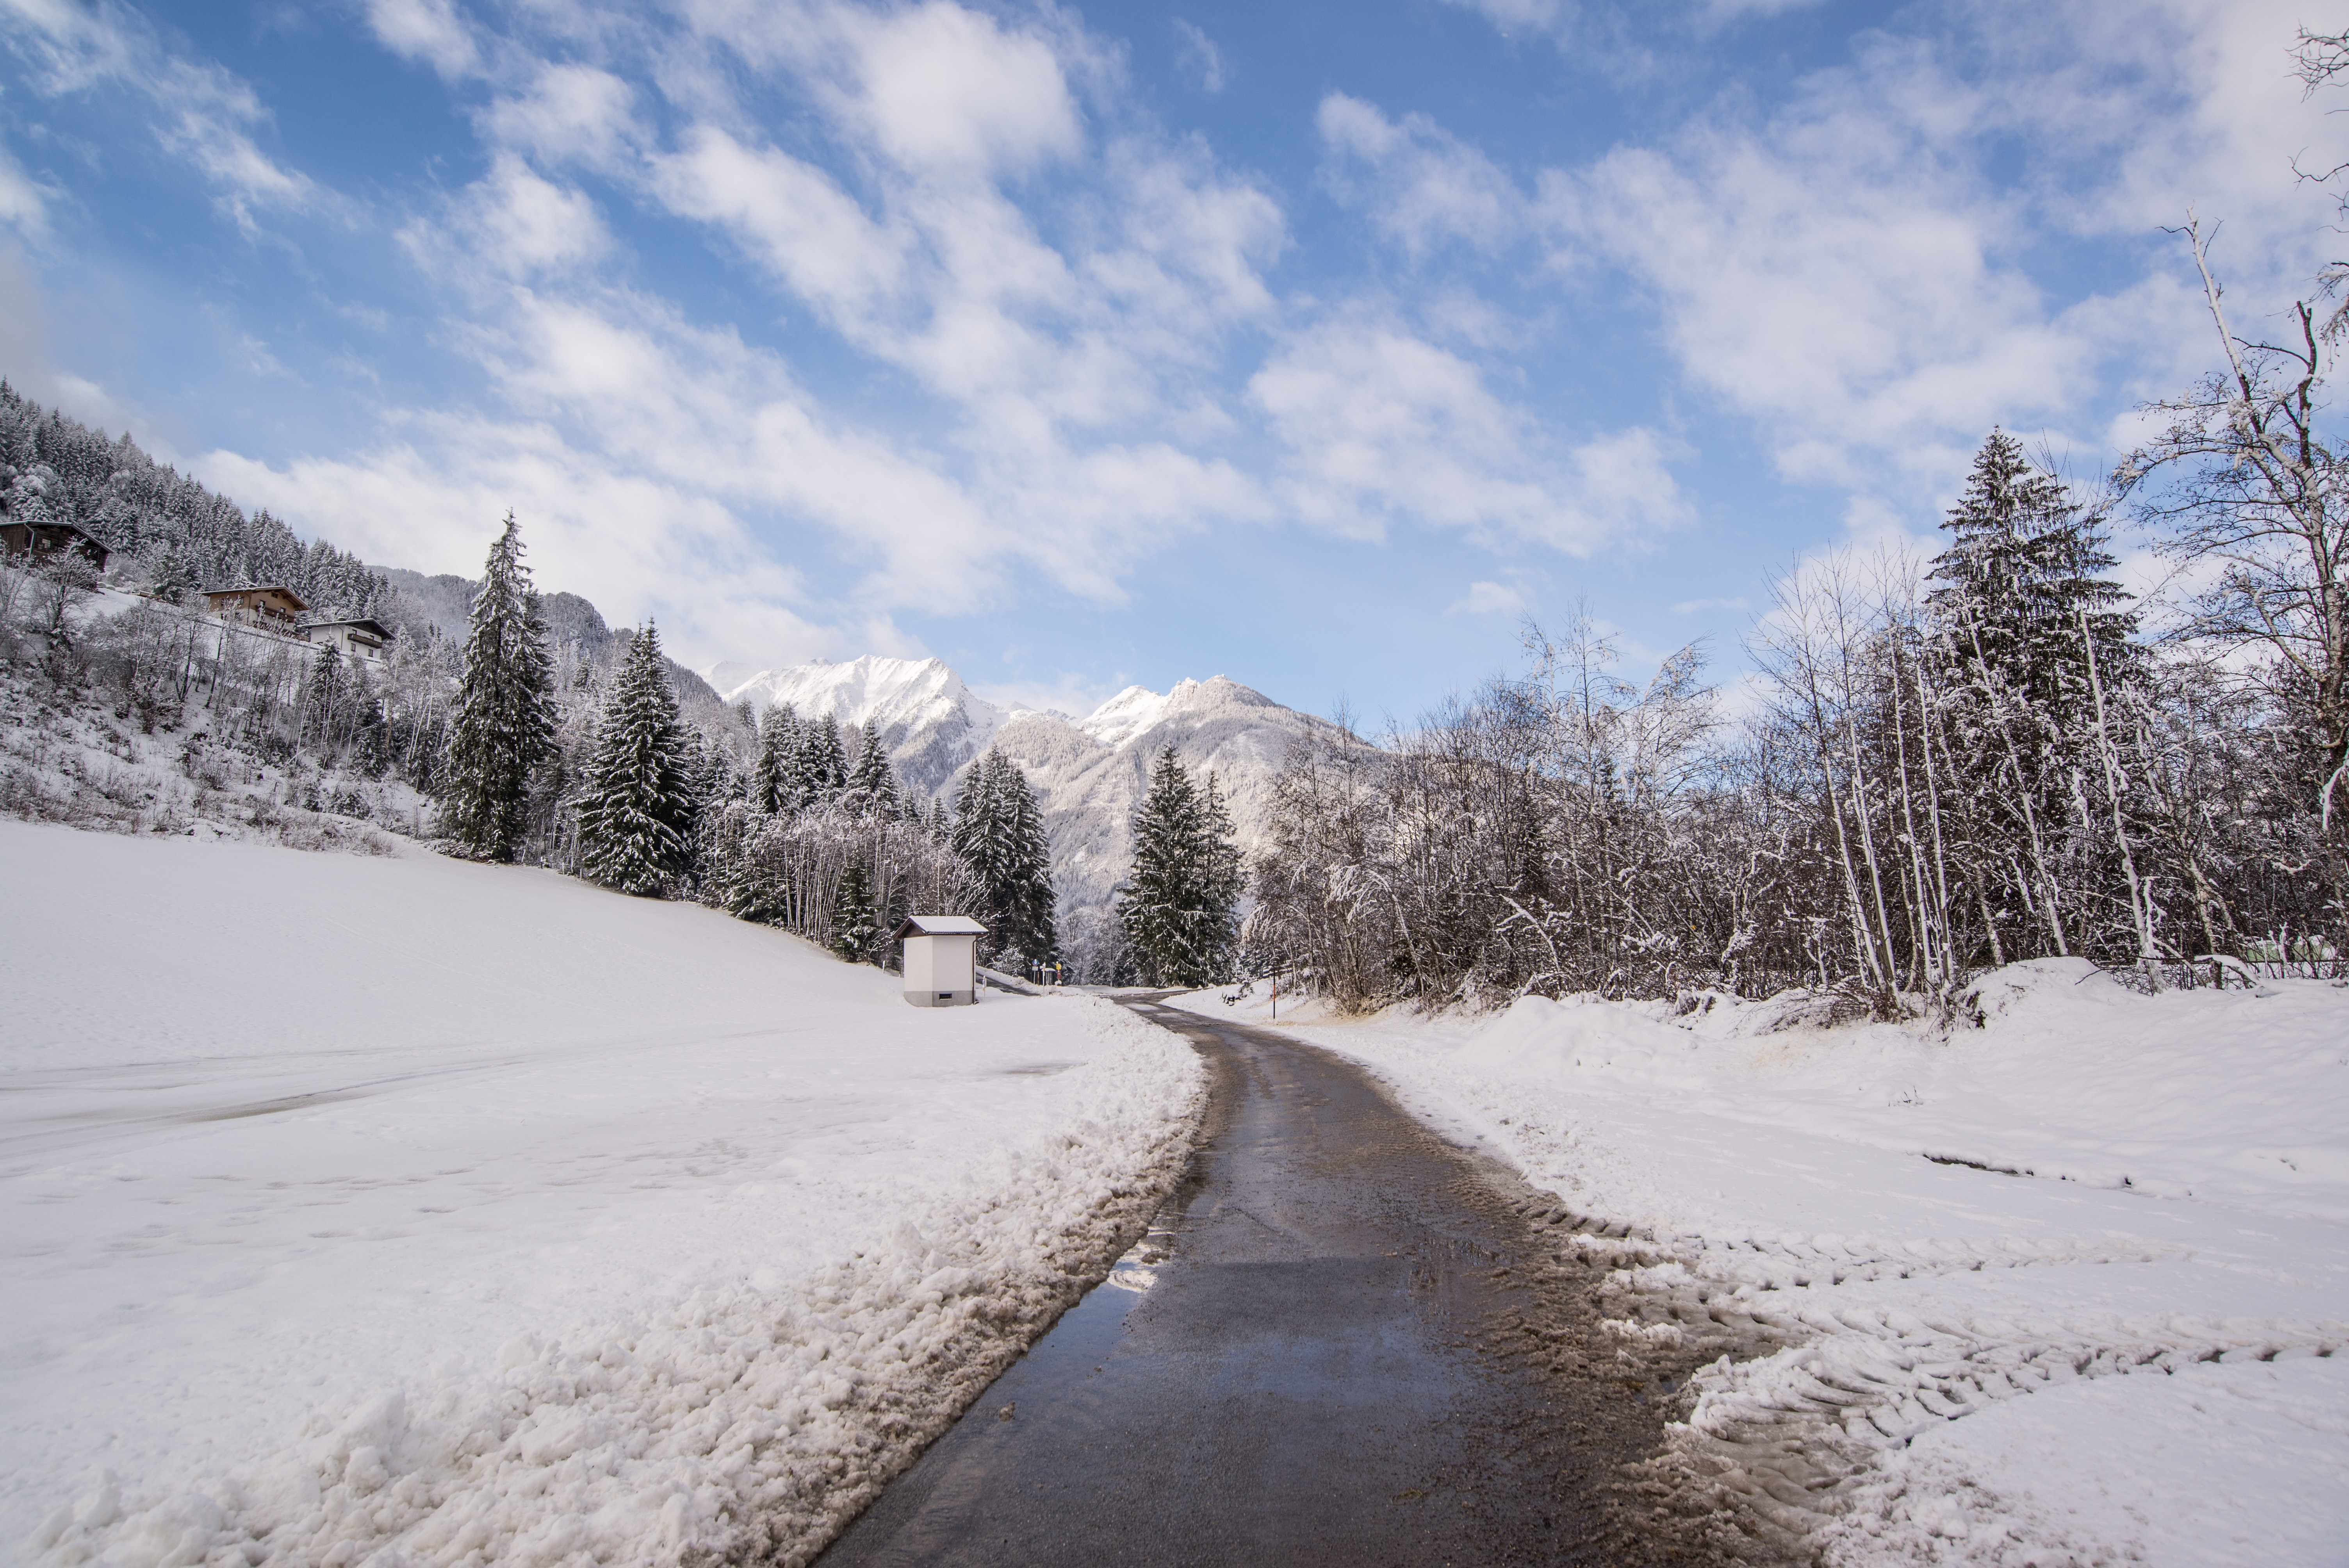 Pavement road surrounded by snow and pine trees photo